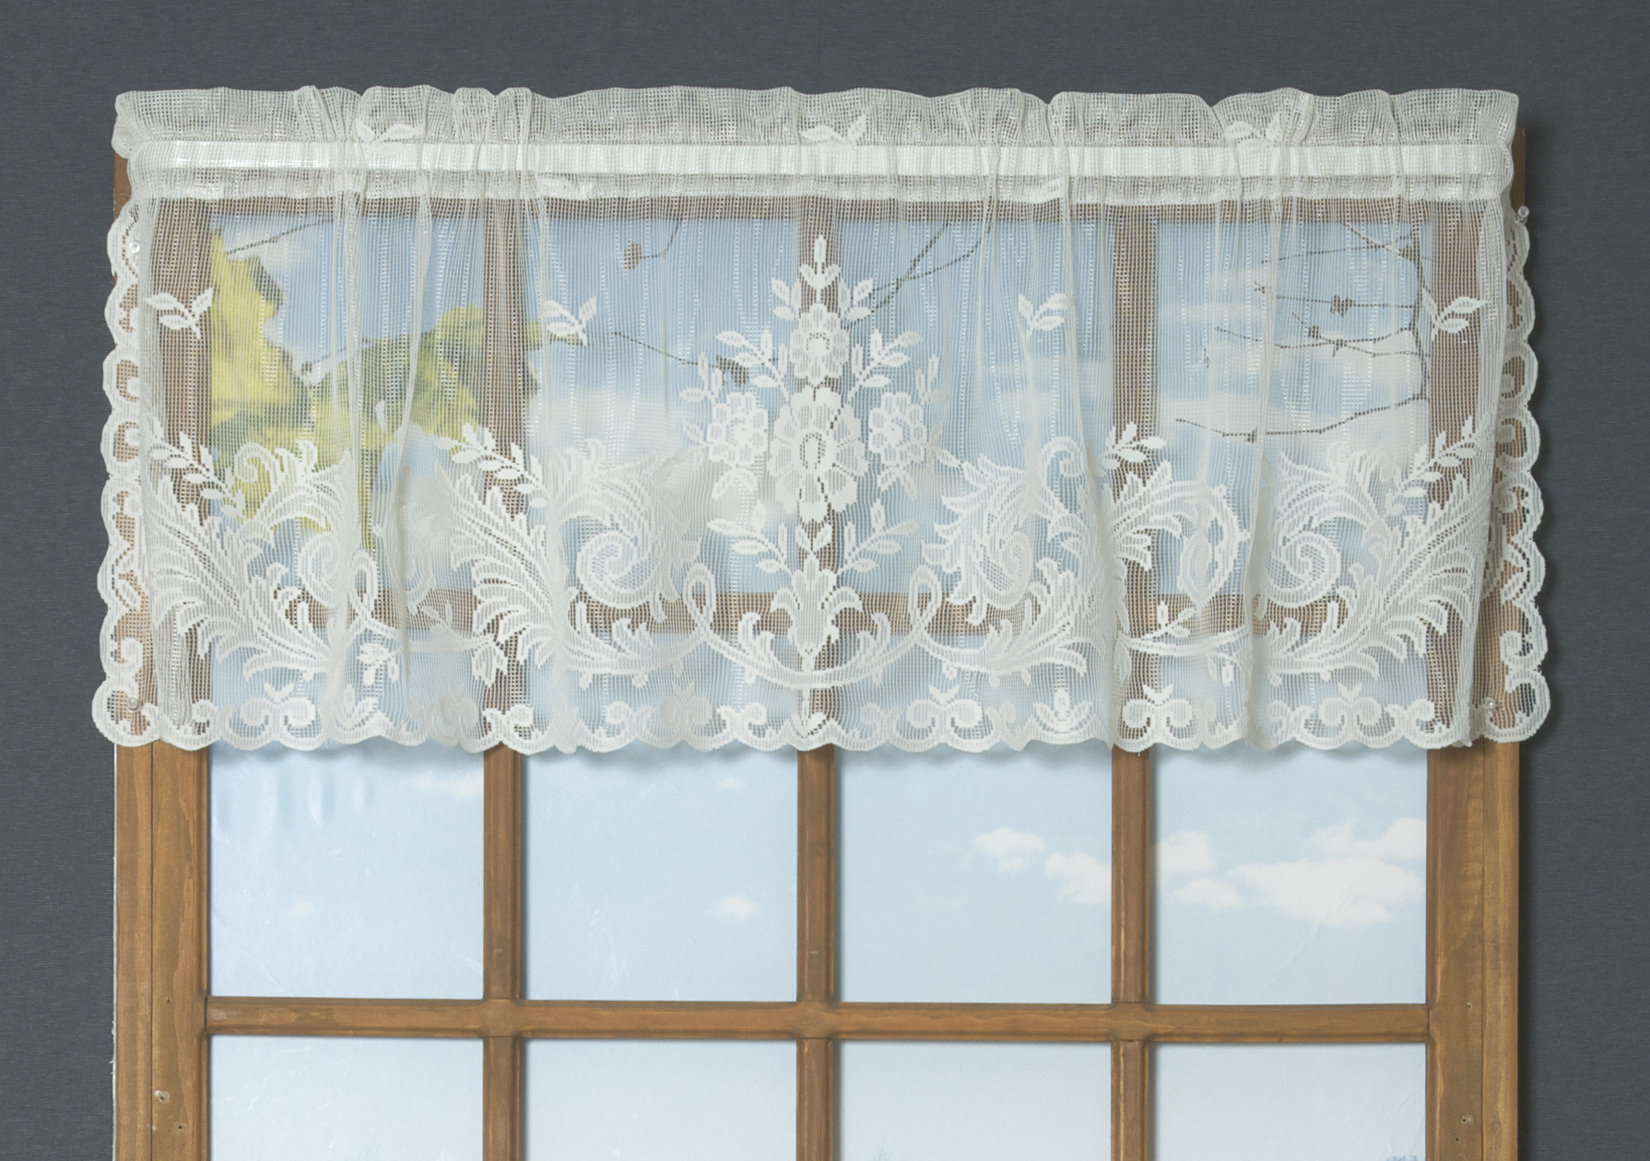 decorating hgtv topic design valance valances window treatments videos styles